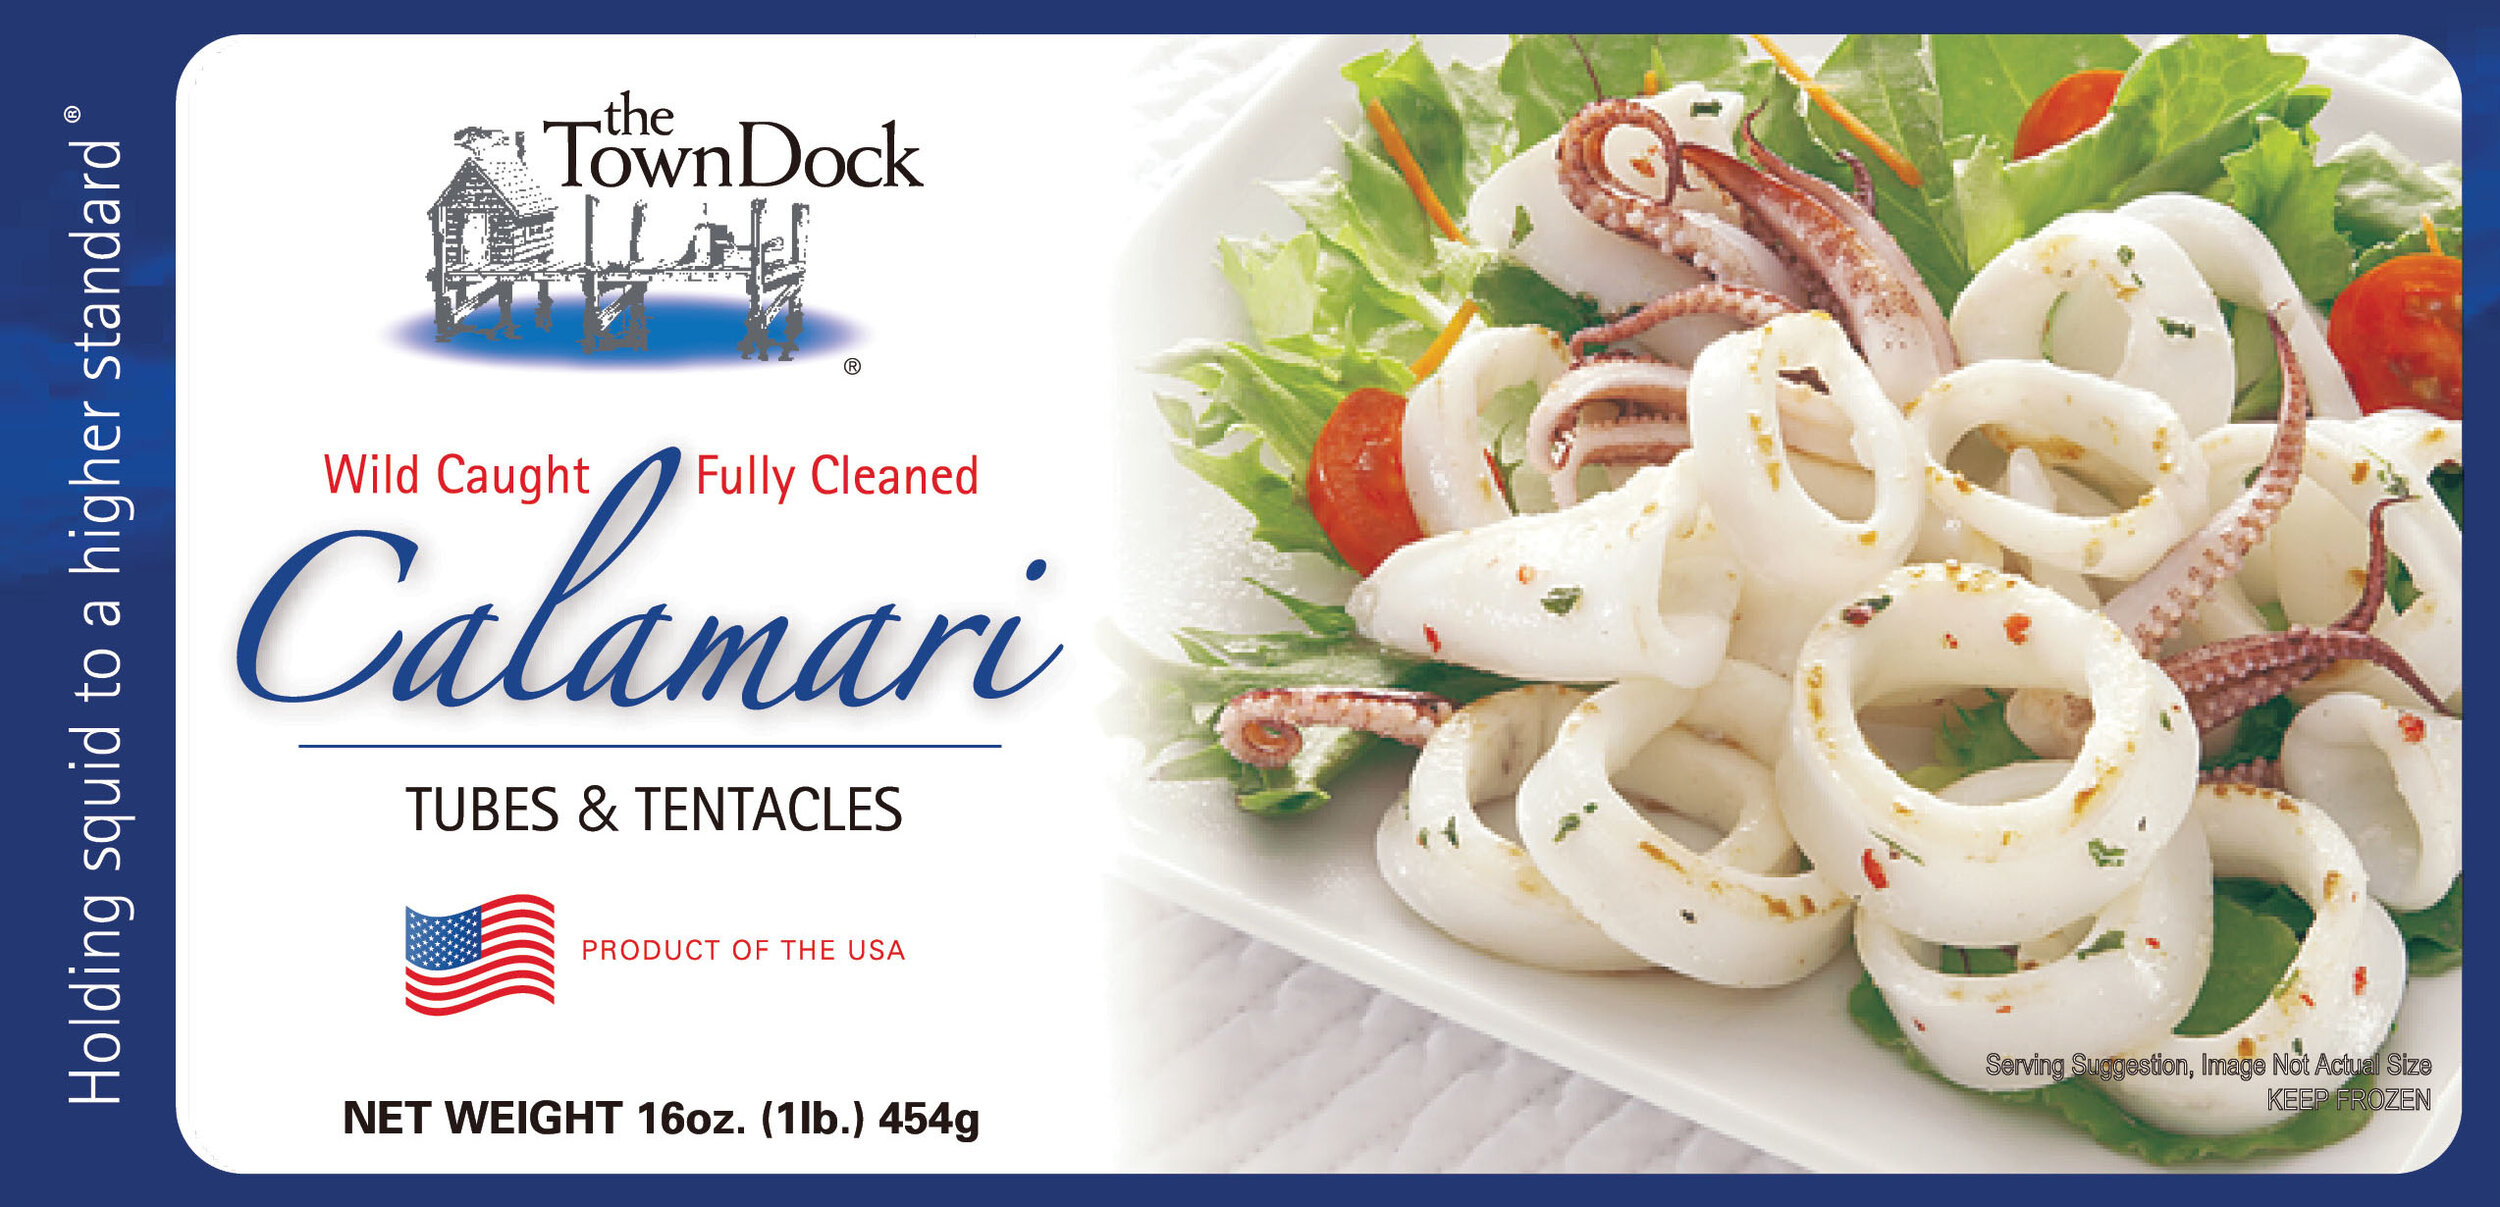 RETAIL CALAMARI FOR GROCERY/FOOD STORES